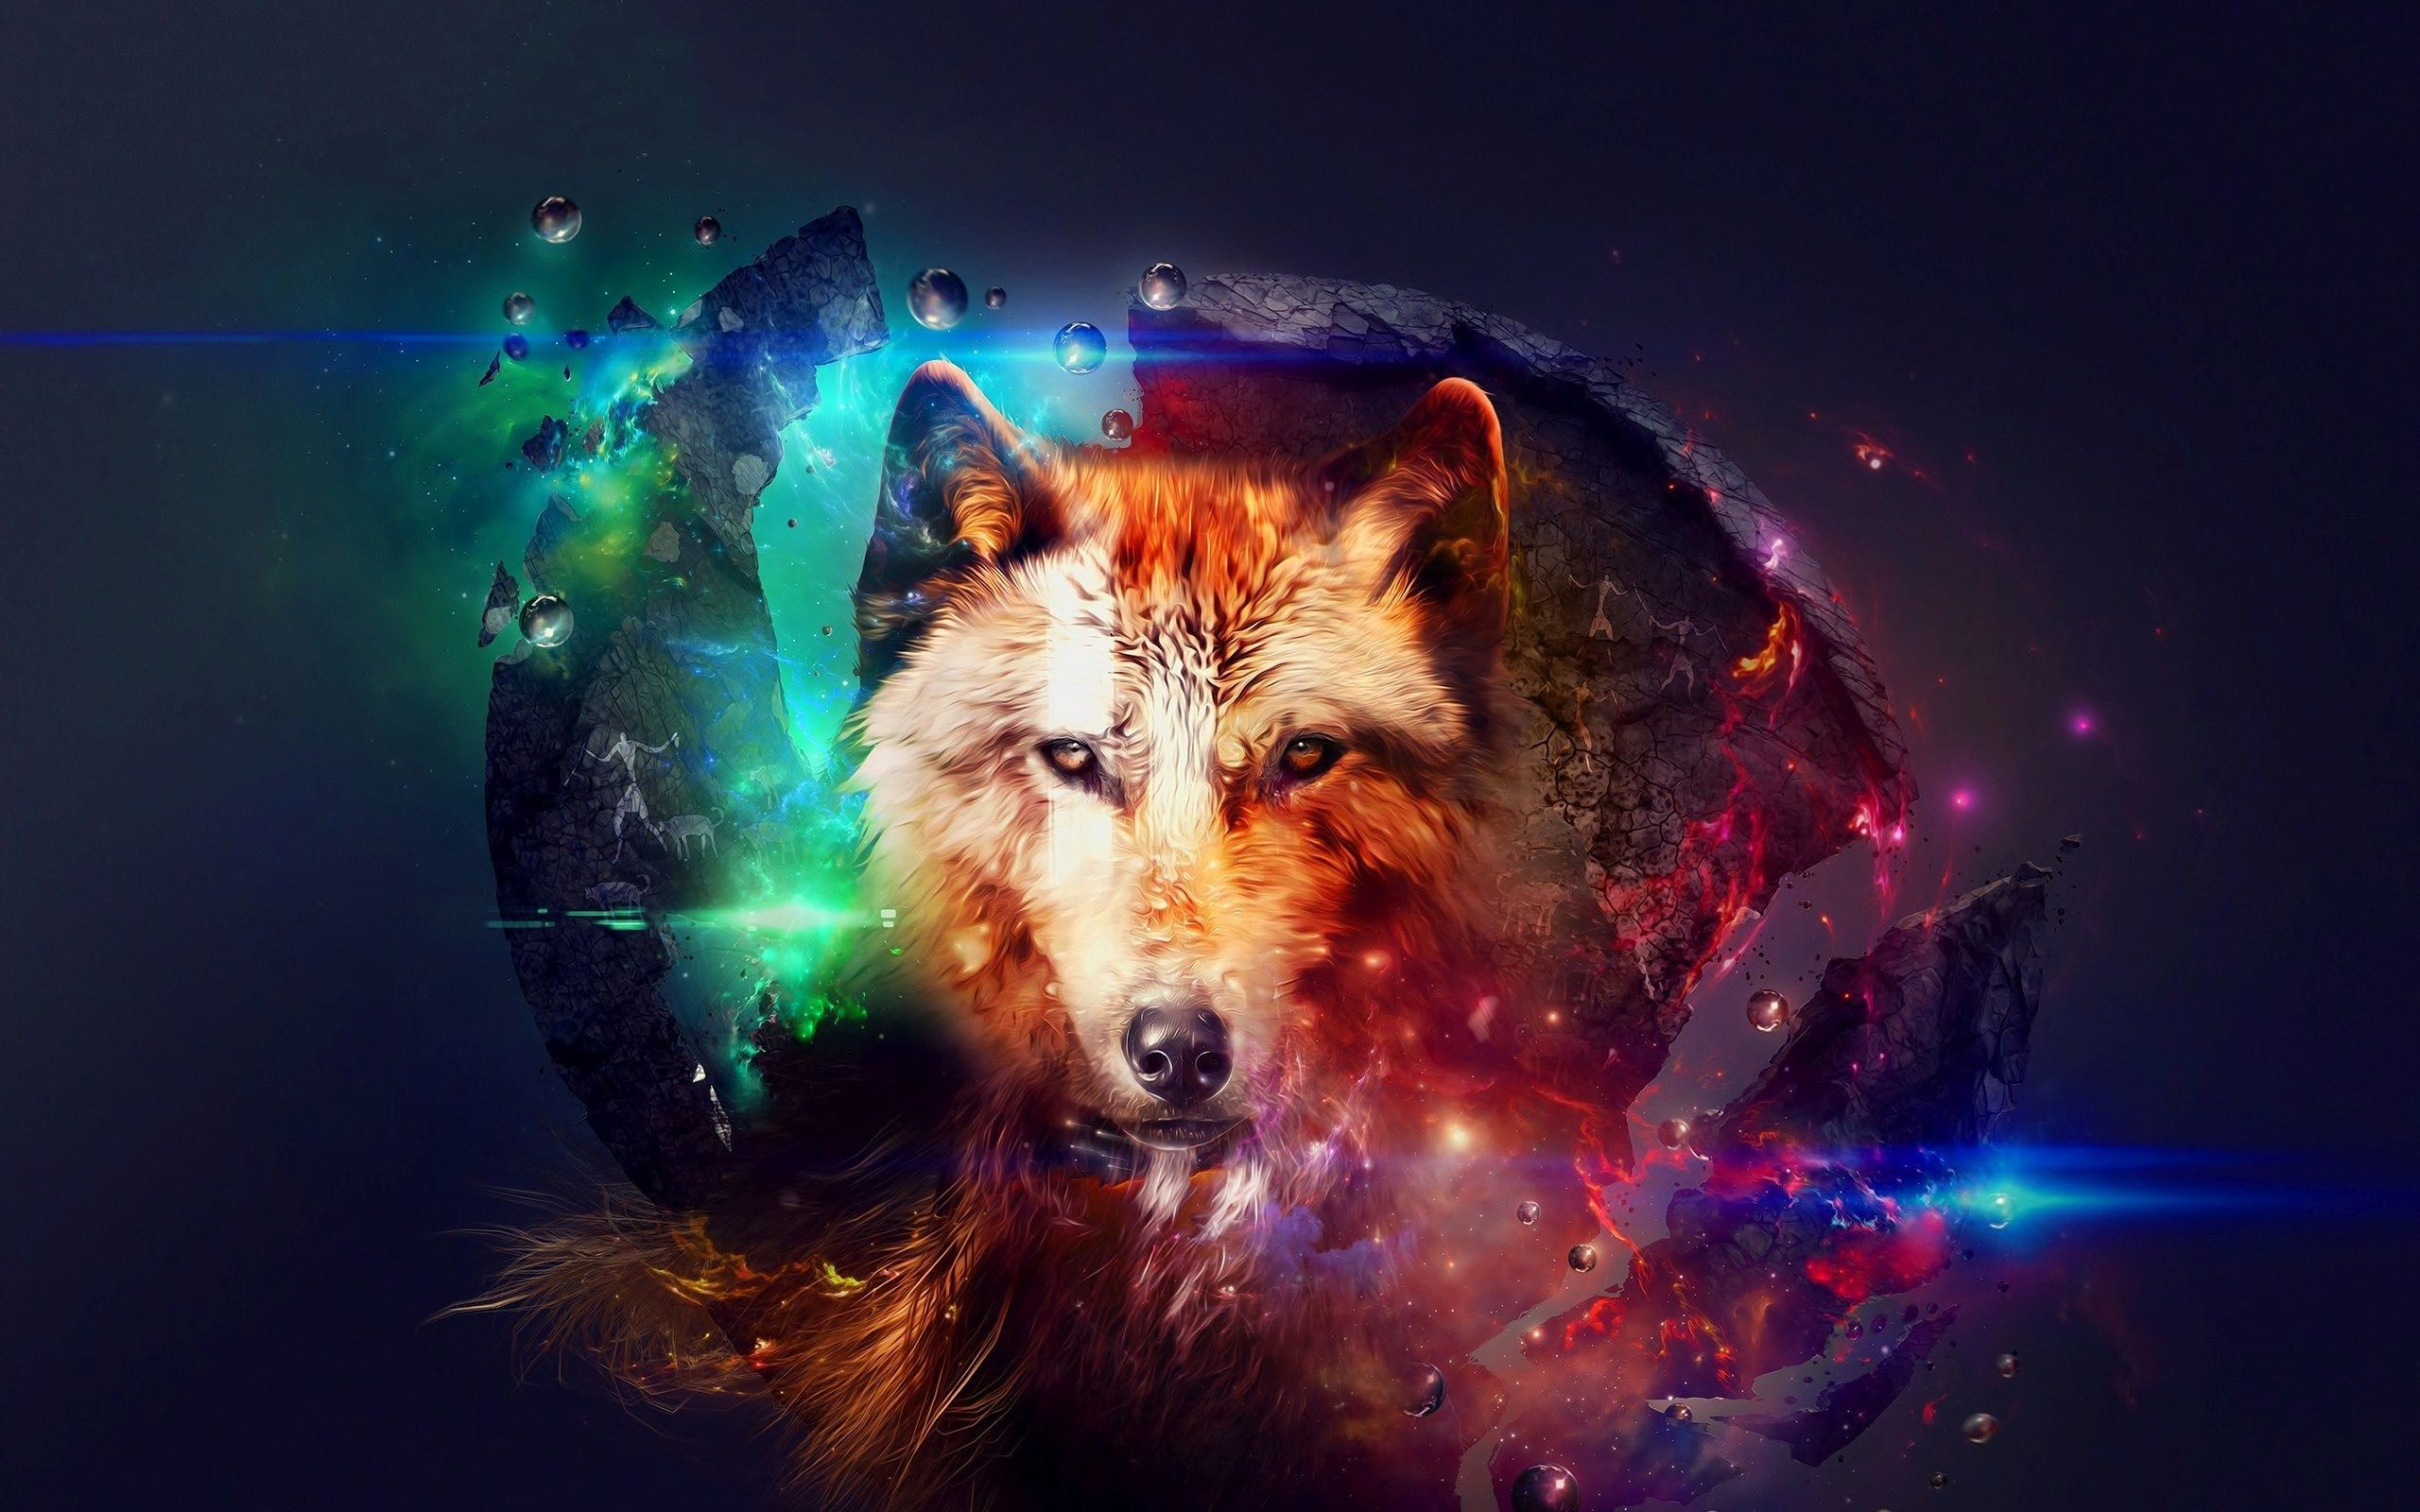 Galaxy Wolf Wallpaper 69+ images